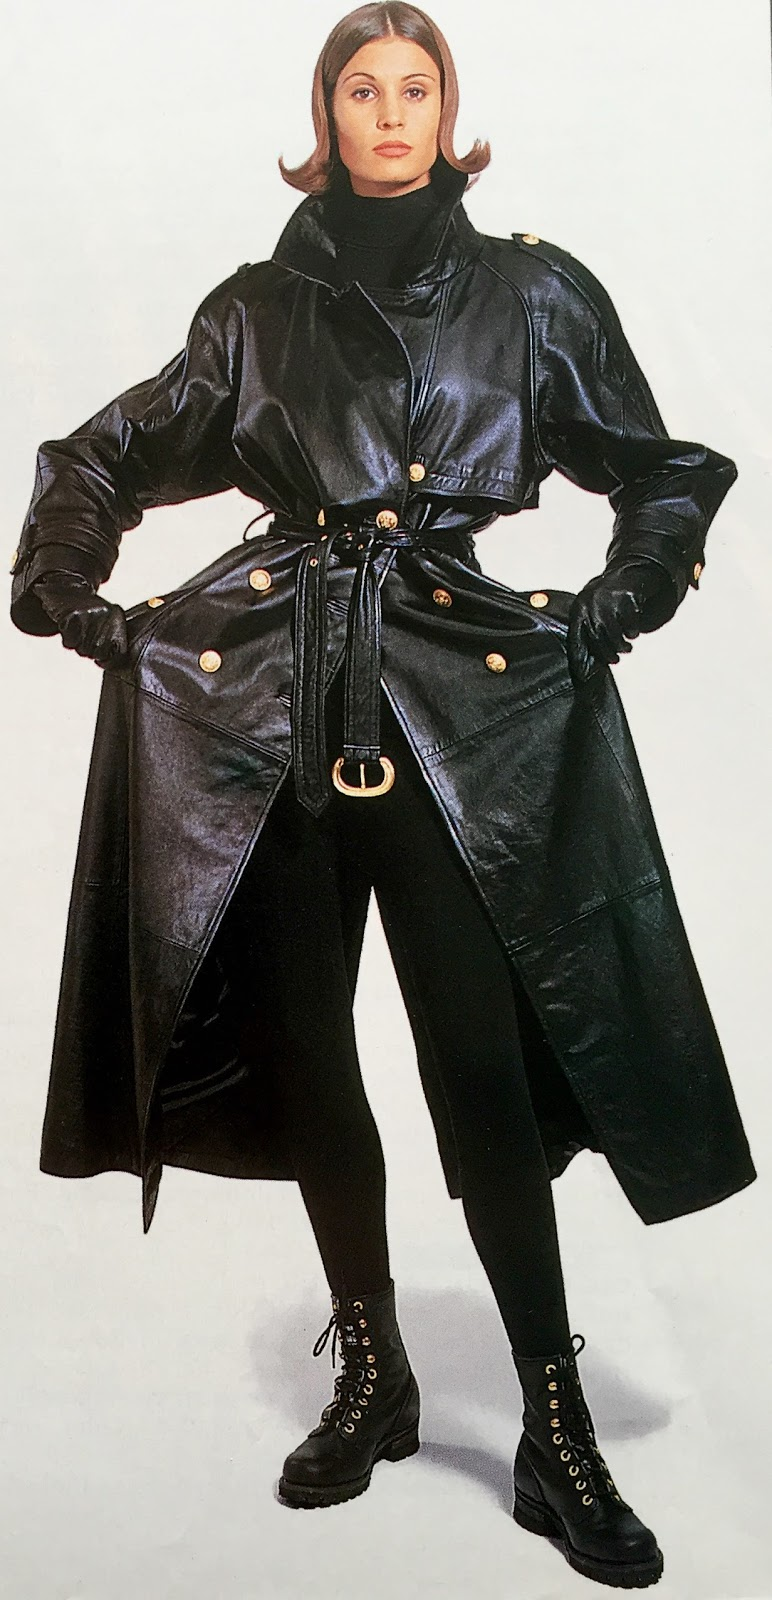 Classic Leather Trench Coat Leather Daydreams1992 Coat jGMVpLUzSq